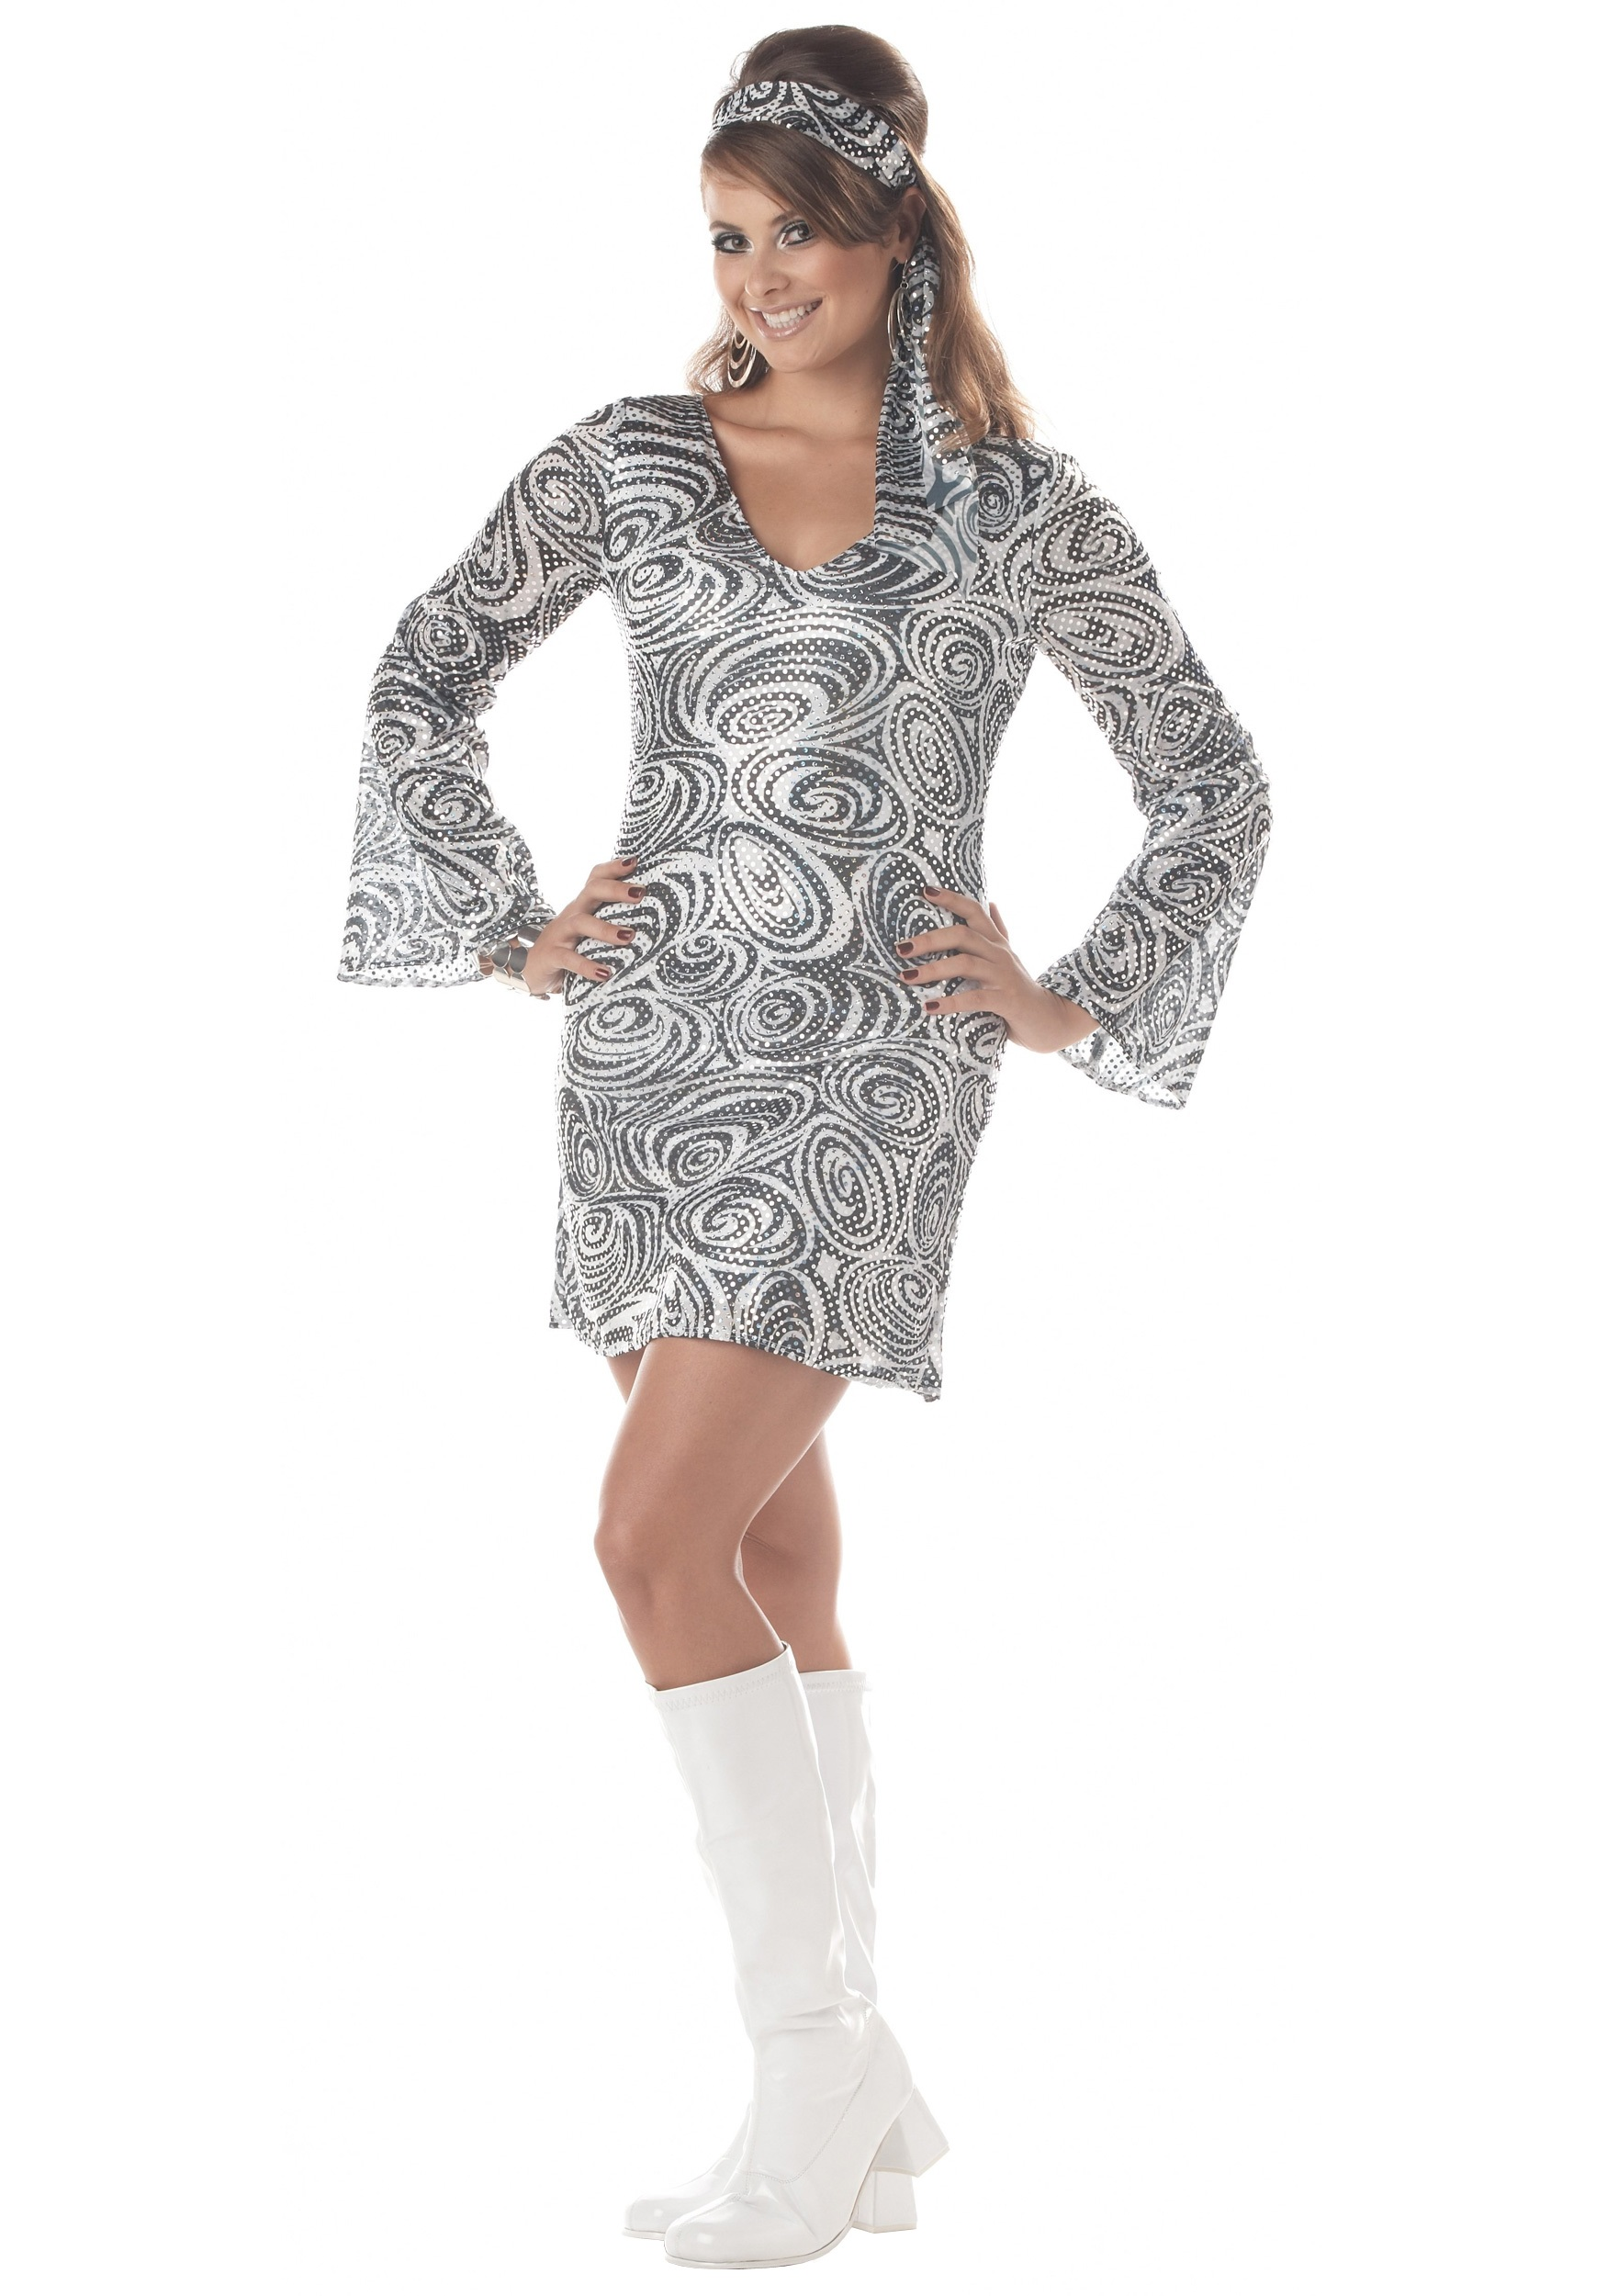 96ca969fc7 Plus Size Disco Diva Dress Costume - Adult Disco Party Costumes 1X 2X 3X